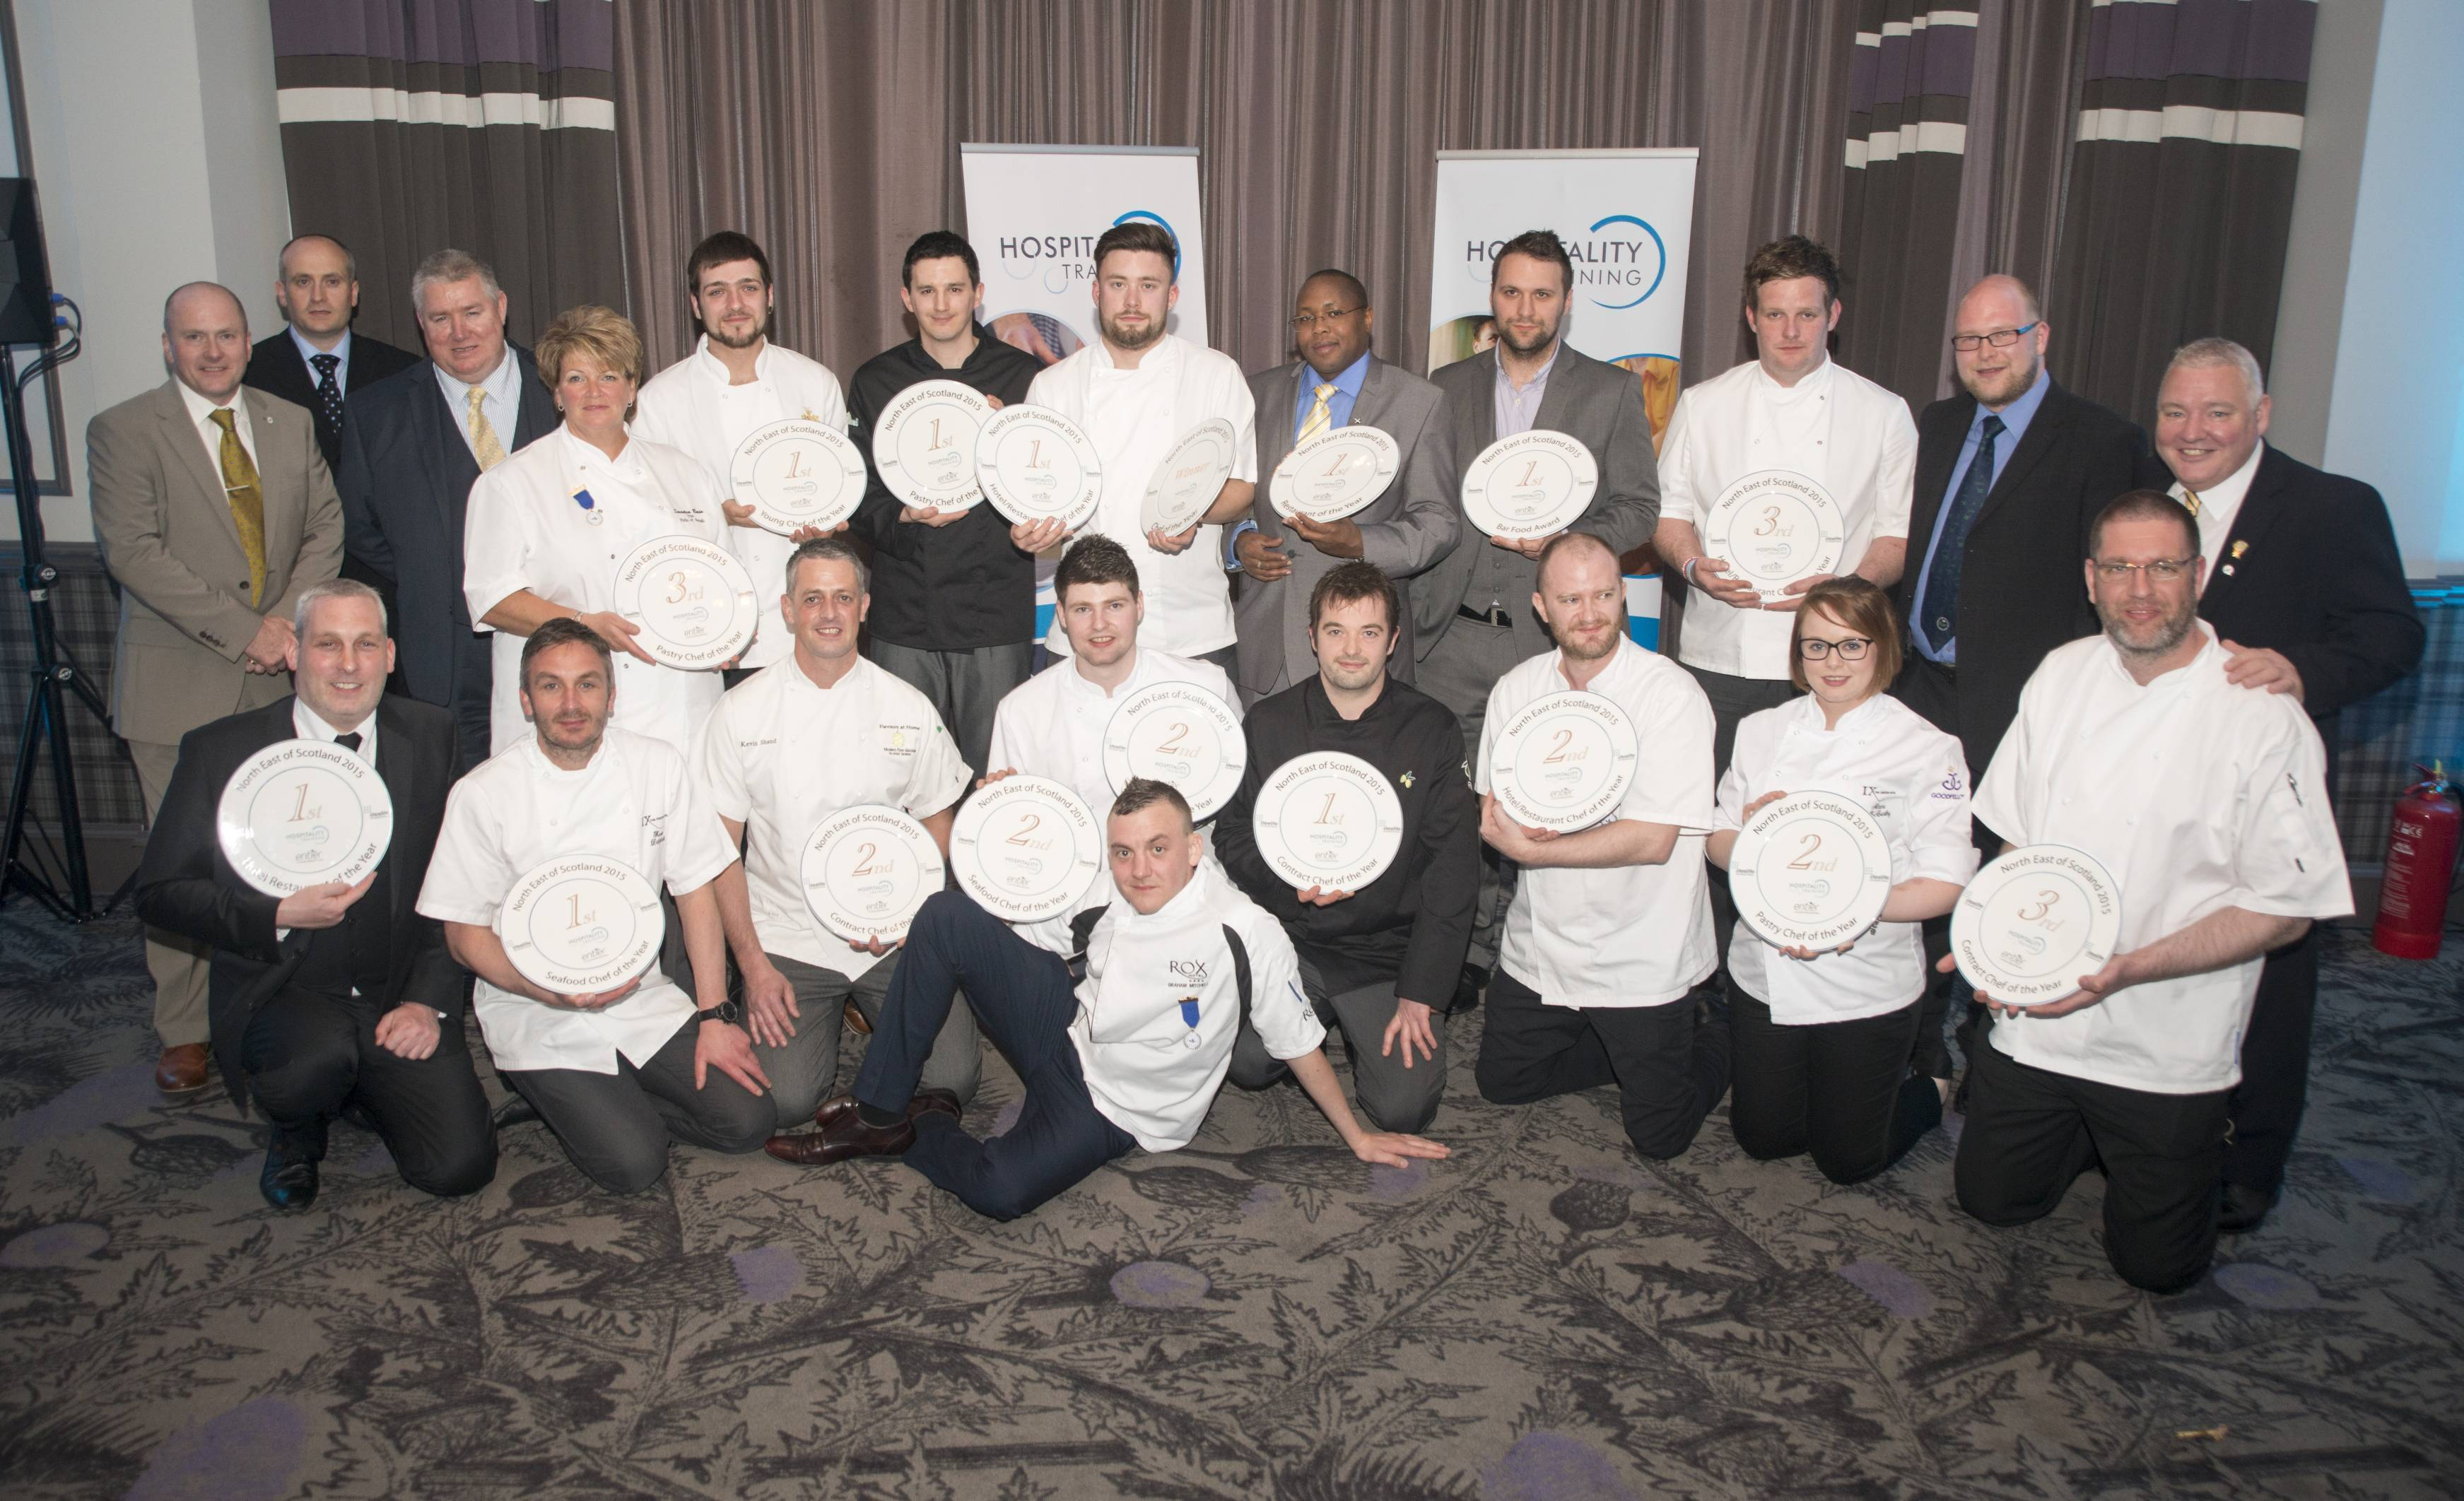 The winners and runners-up at the North East of Scotland Chef and Restaurant Awards.